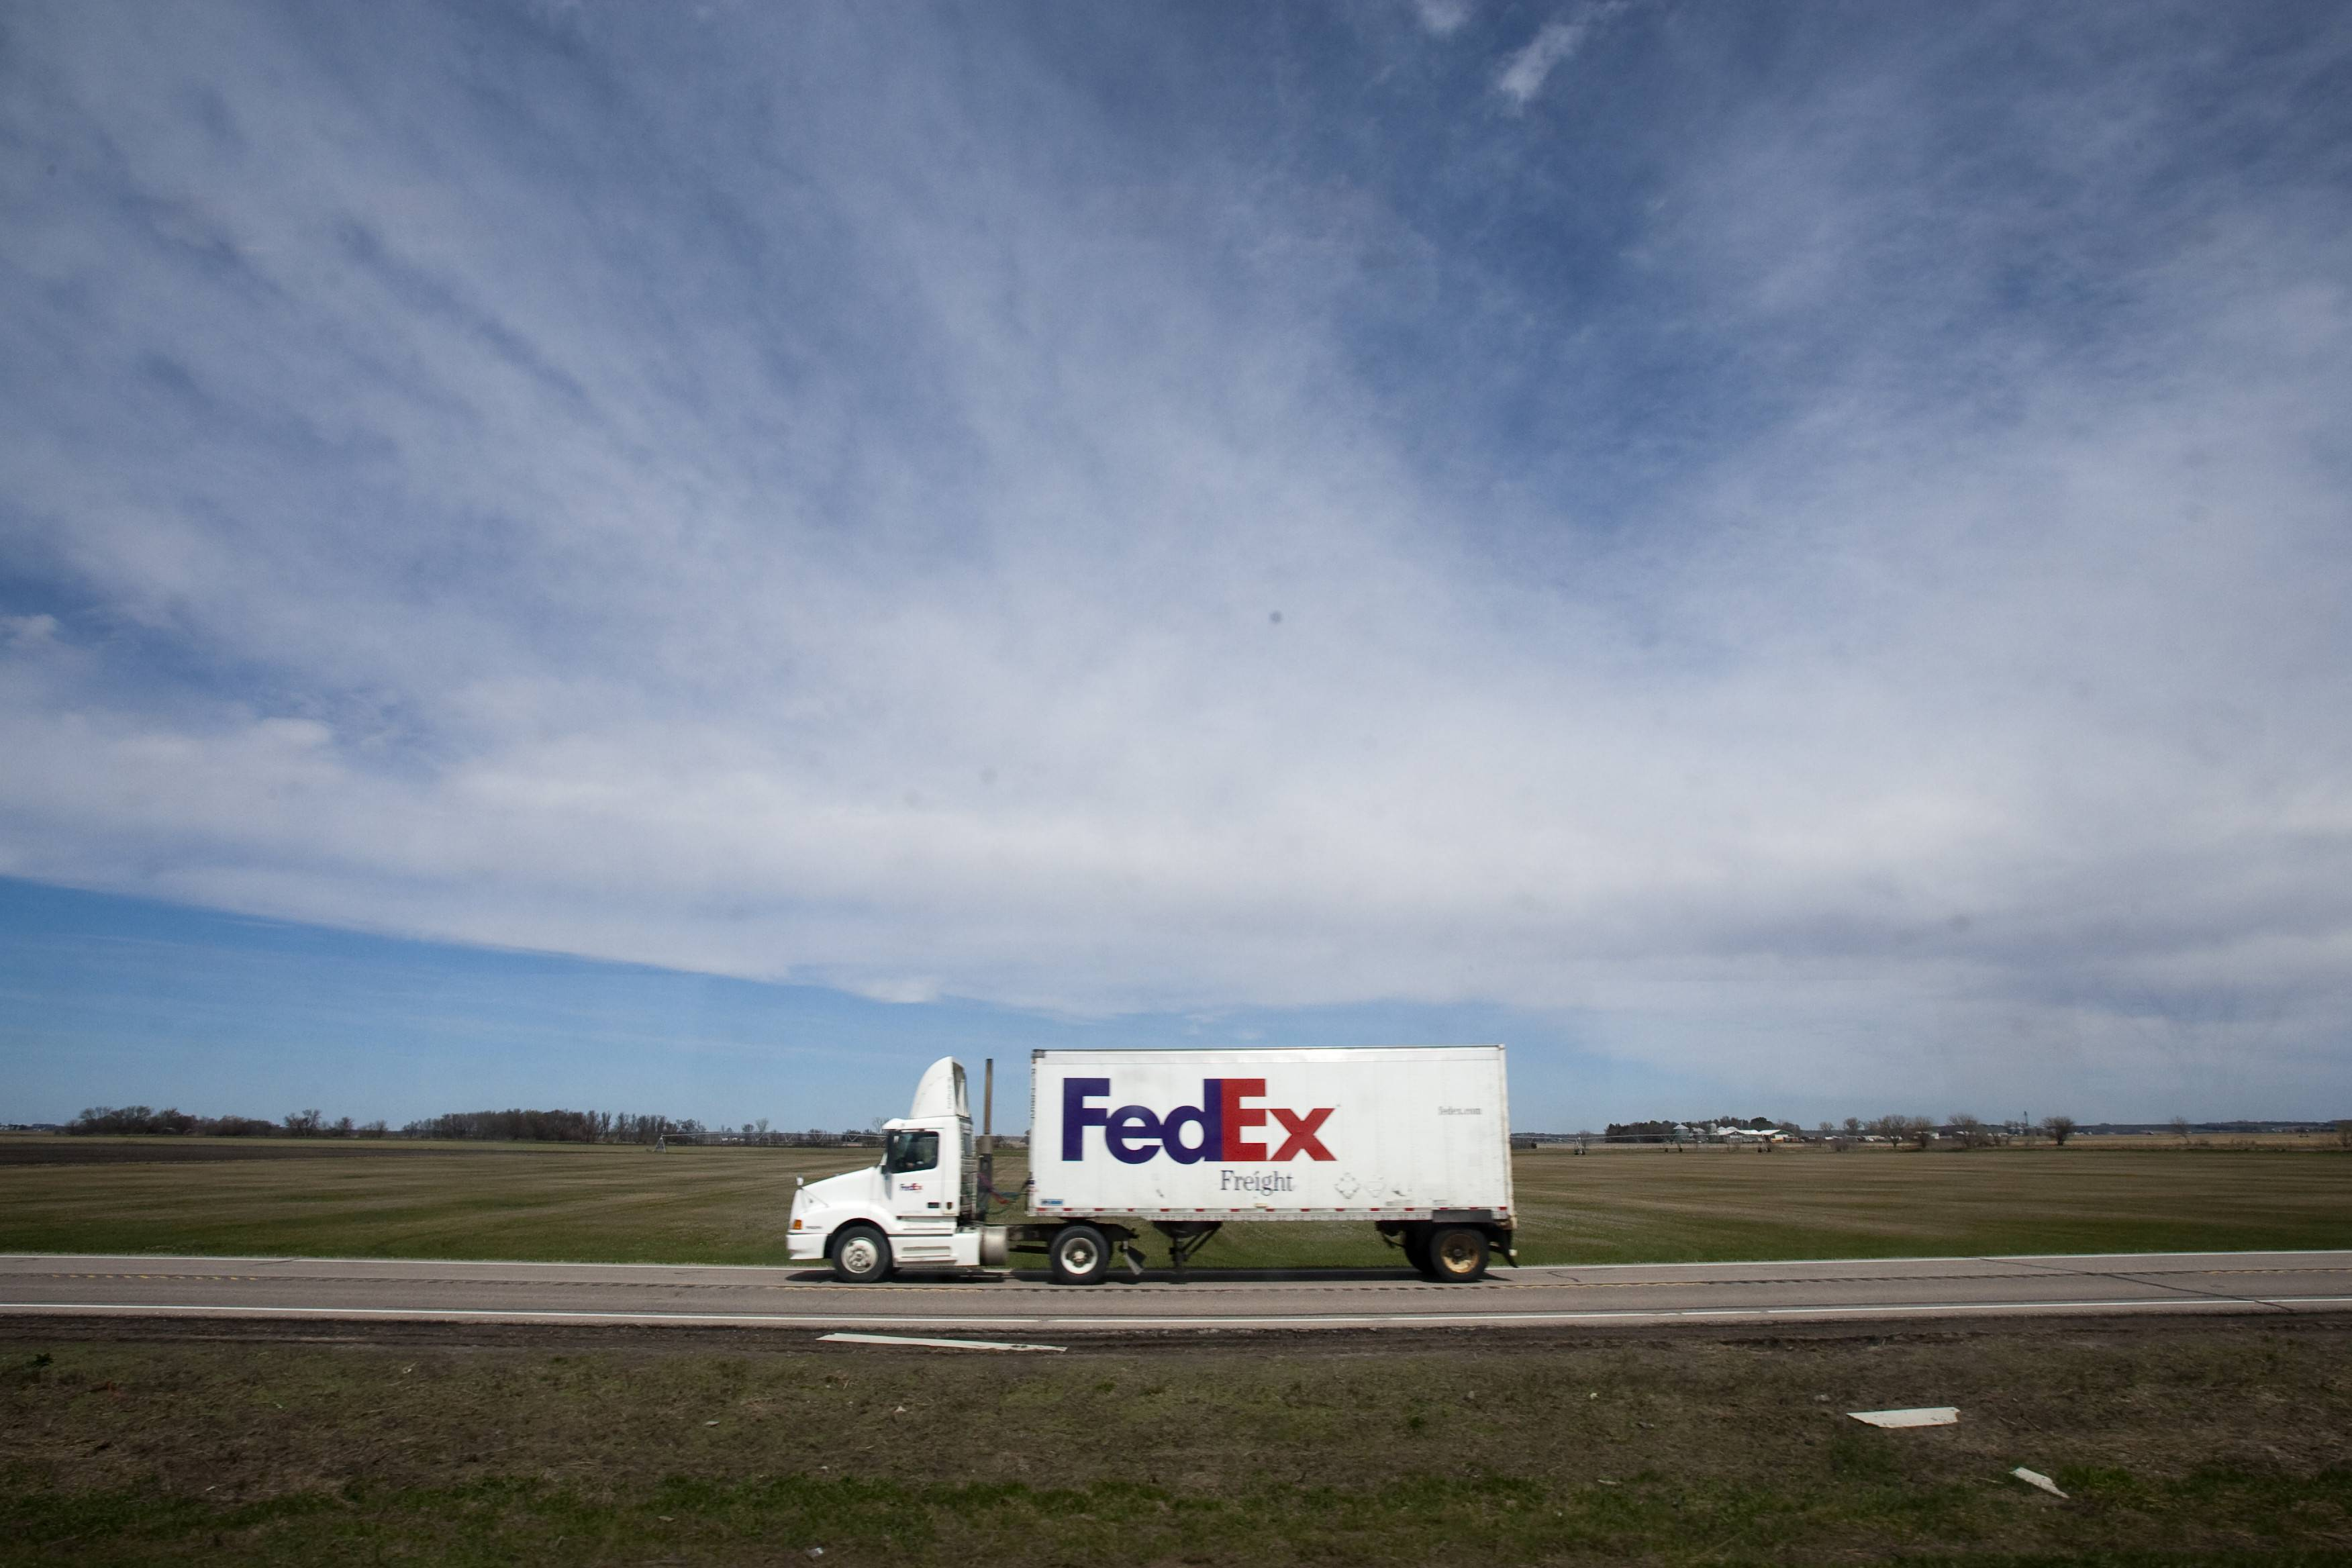 This April 7, 2010 file photo shows a Federal Express delivery truck traveling north of Fremont, Neb. FedEx Corp. is under criminal indictment and facing $1.6 billion in penalties on allegations the company failed to police the activities of illegal online pharmacies that use the shipping service to deliver prescription drugs.